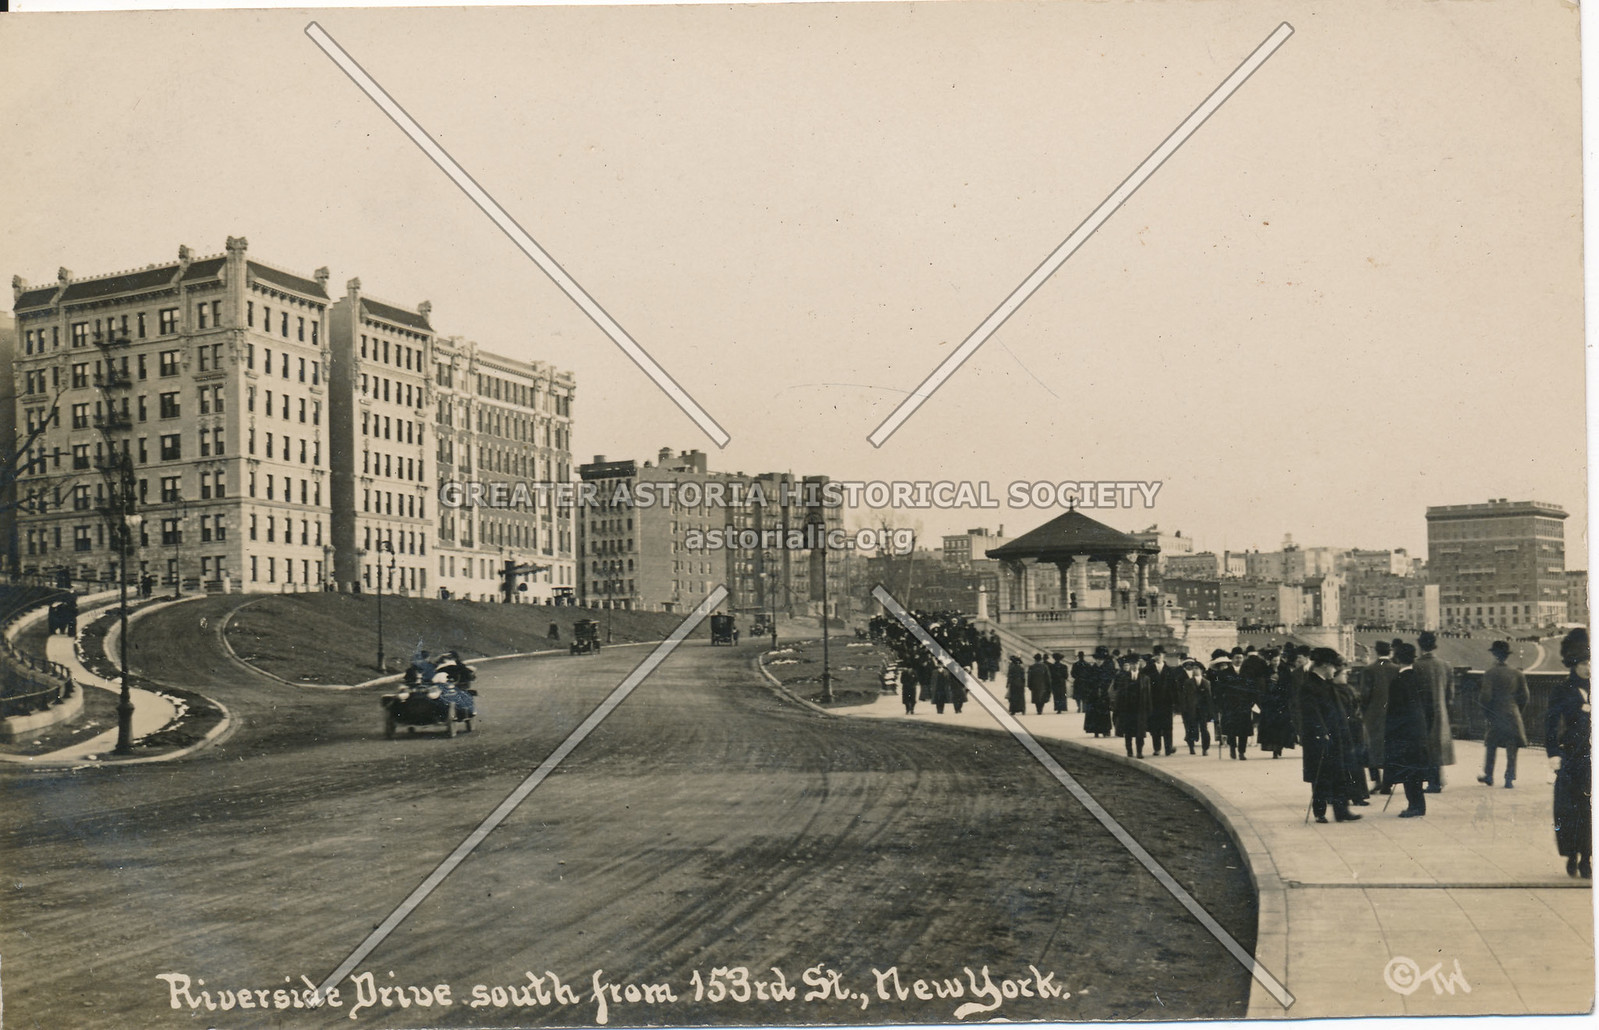 Riverside Drive, South from 153rd St., N.Y.